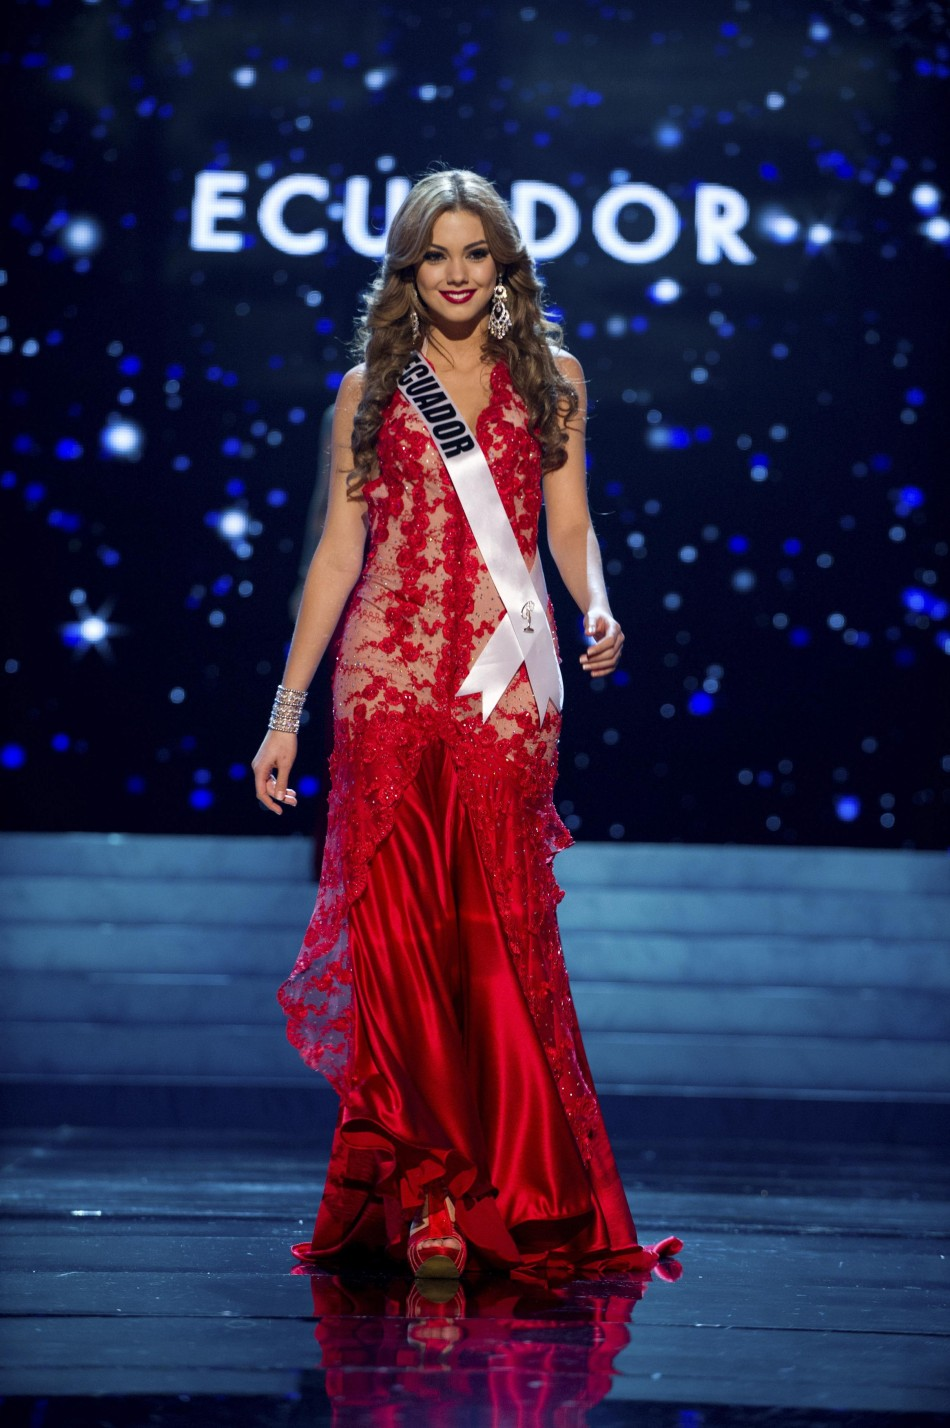 Miss Ecuador 2012 Perez competes in an evening gown of her choice during the Evening Gown Competition of the 2012 Miss Universe Presentation Show in Las Vegas